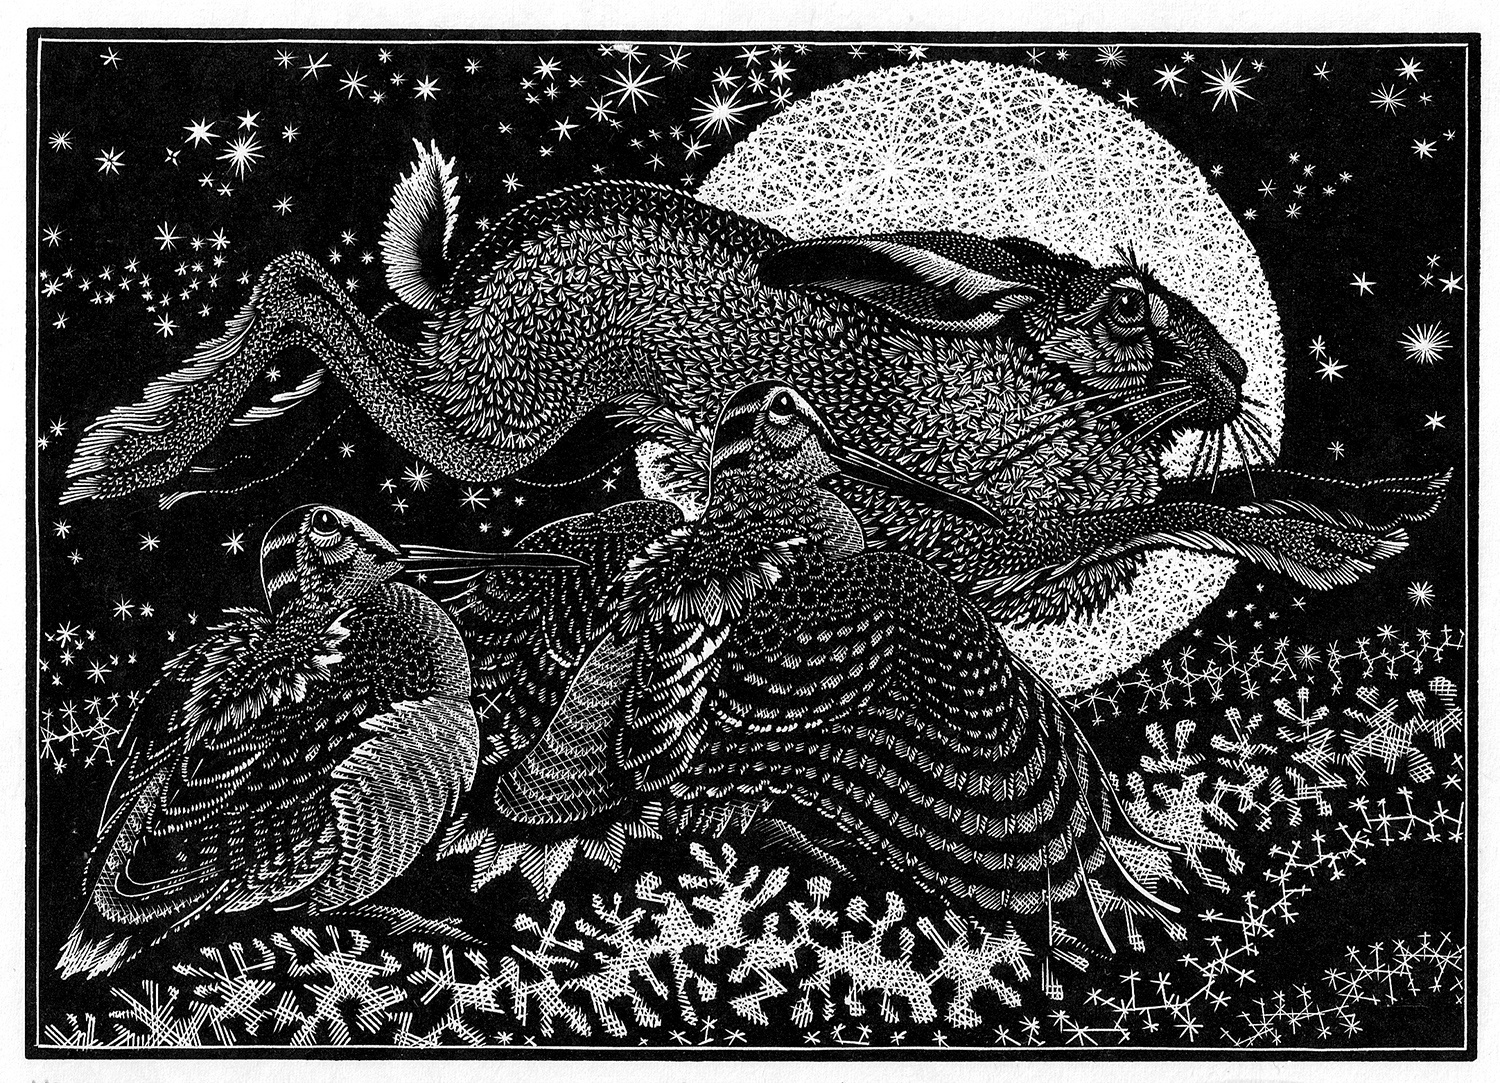 Nocturnal Encounters-Hare and Woodcocks by Colin See-Paynton